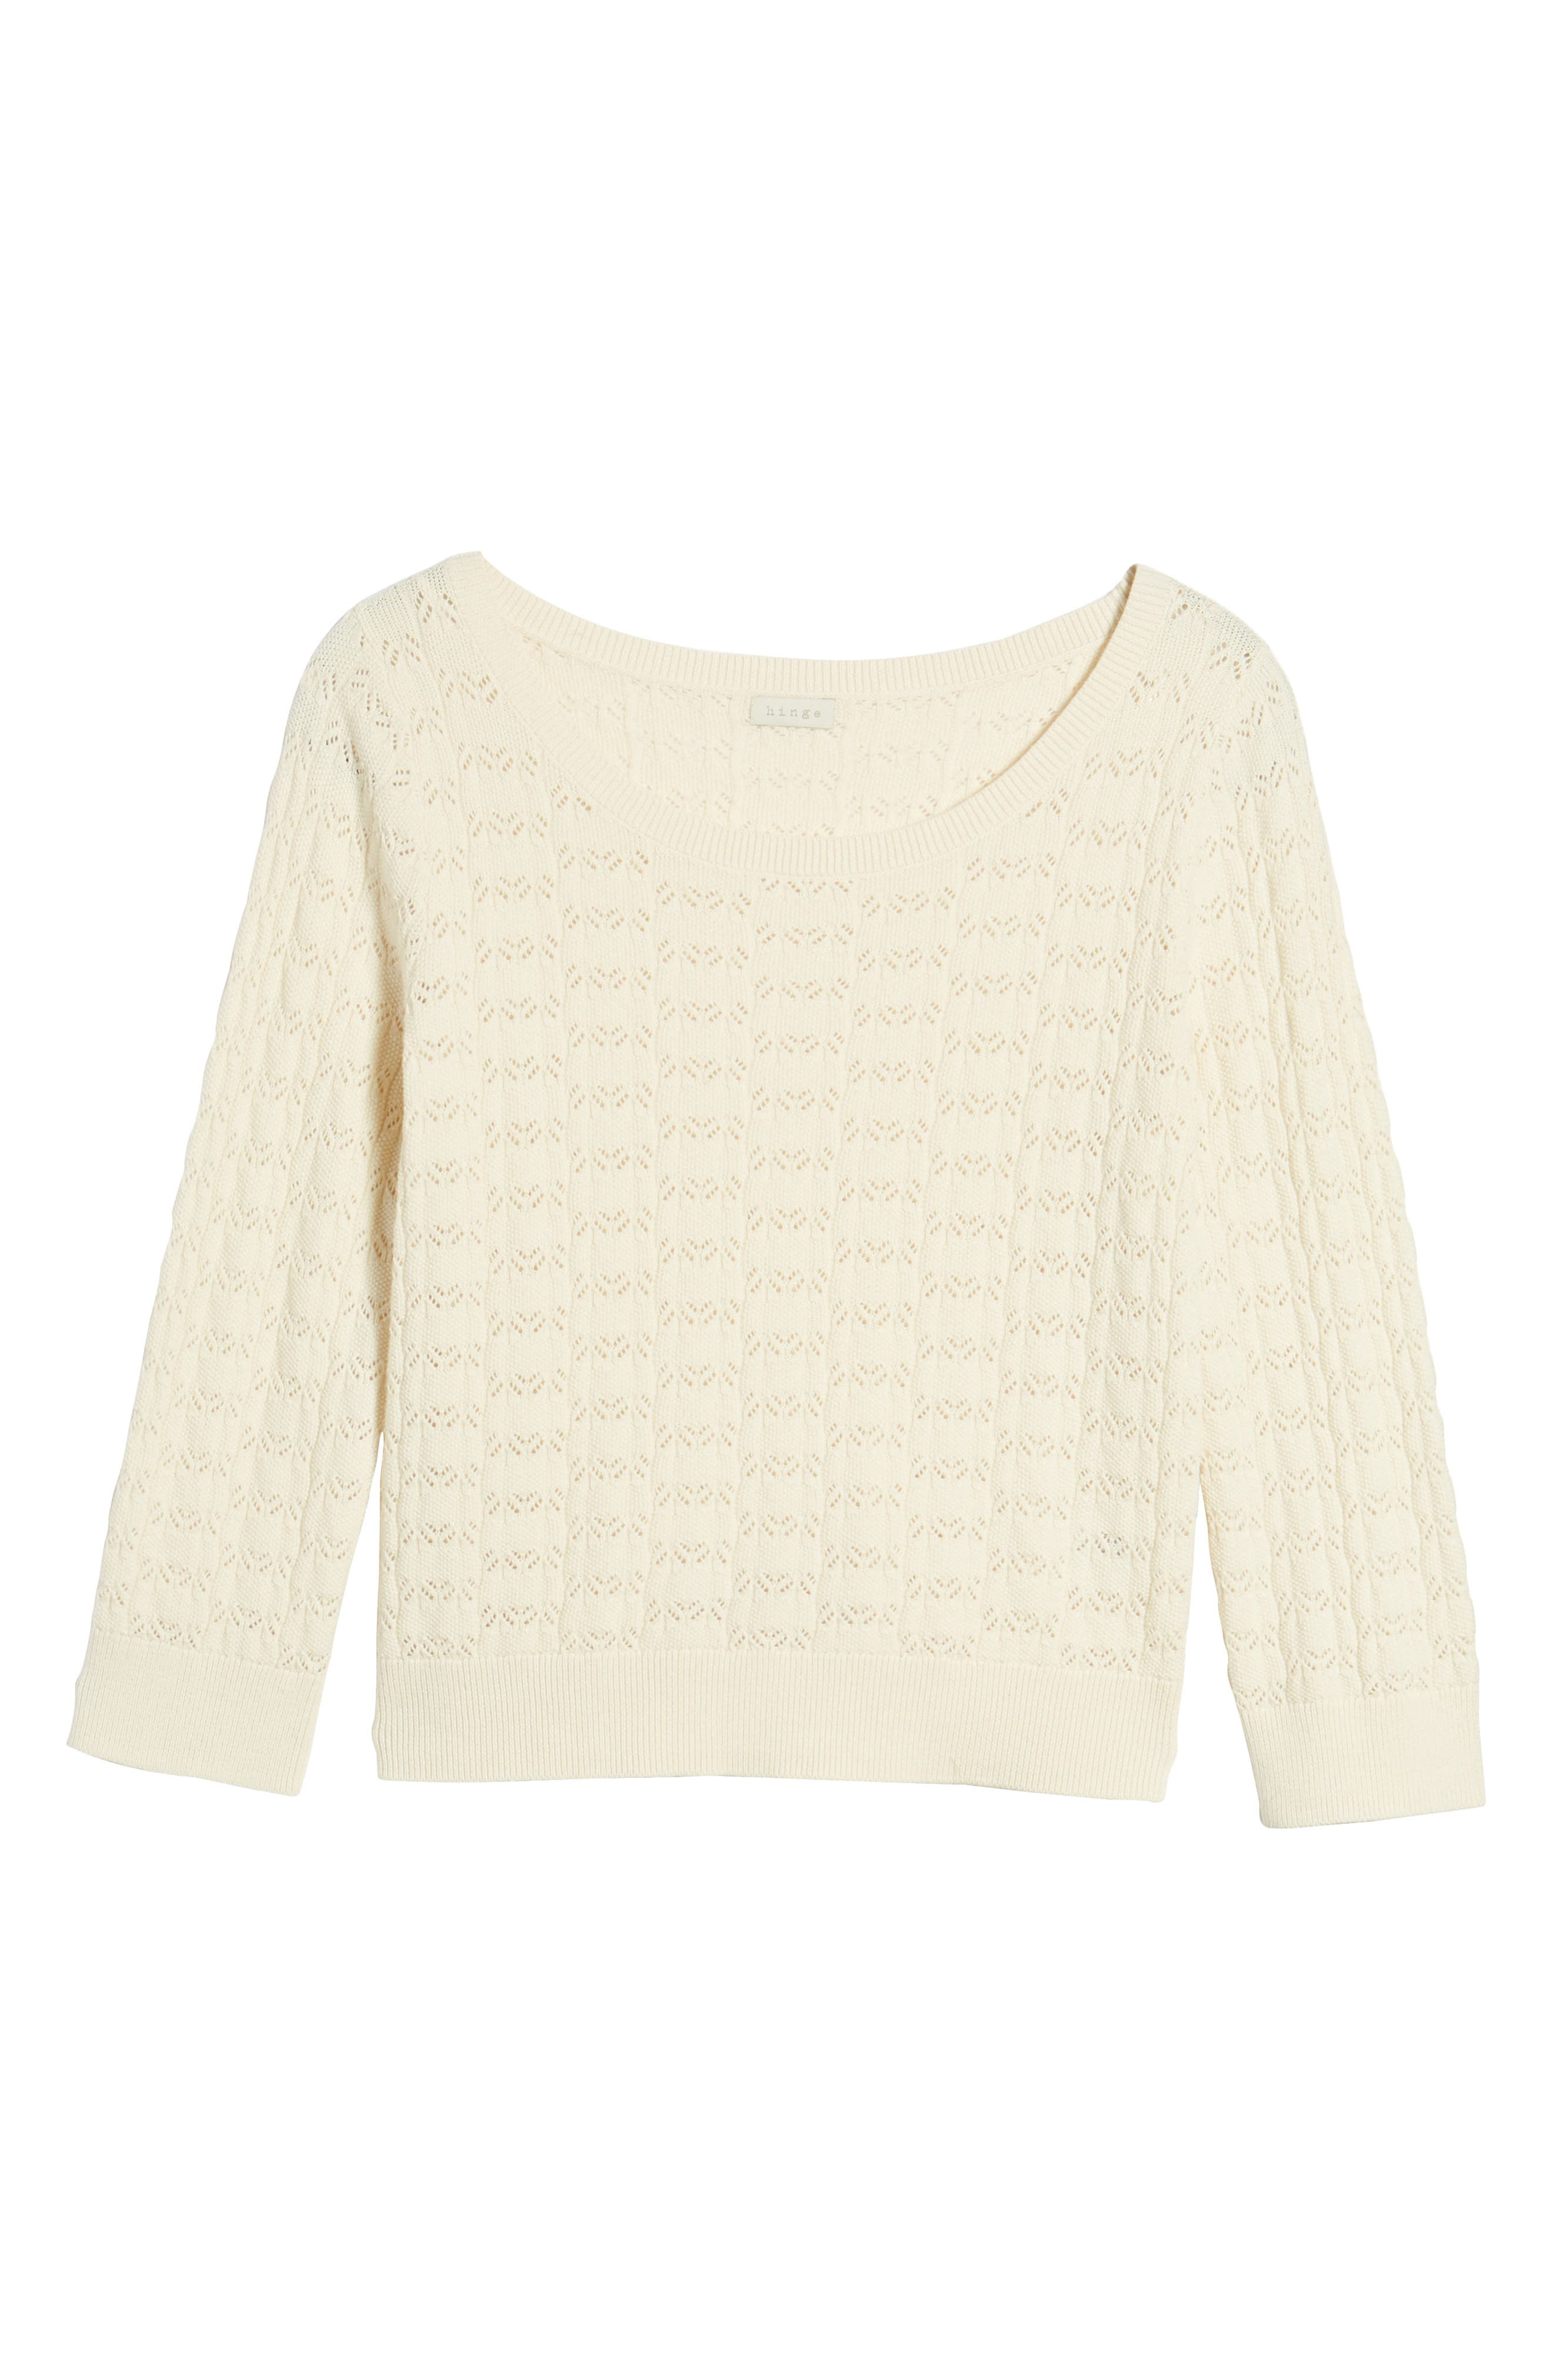 Pointelle Crop Sweater,                             Alternate thumbnail 6, color,                             Ivory Birch